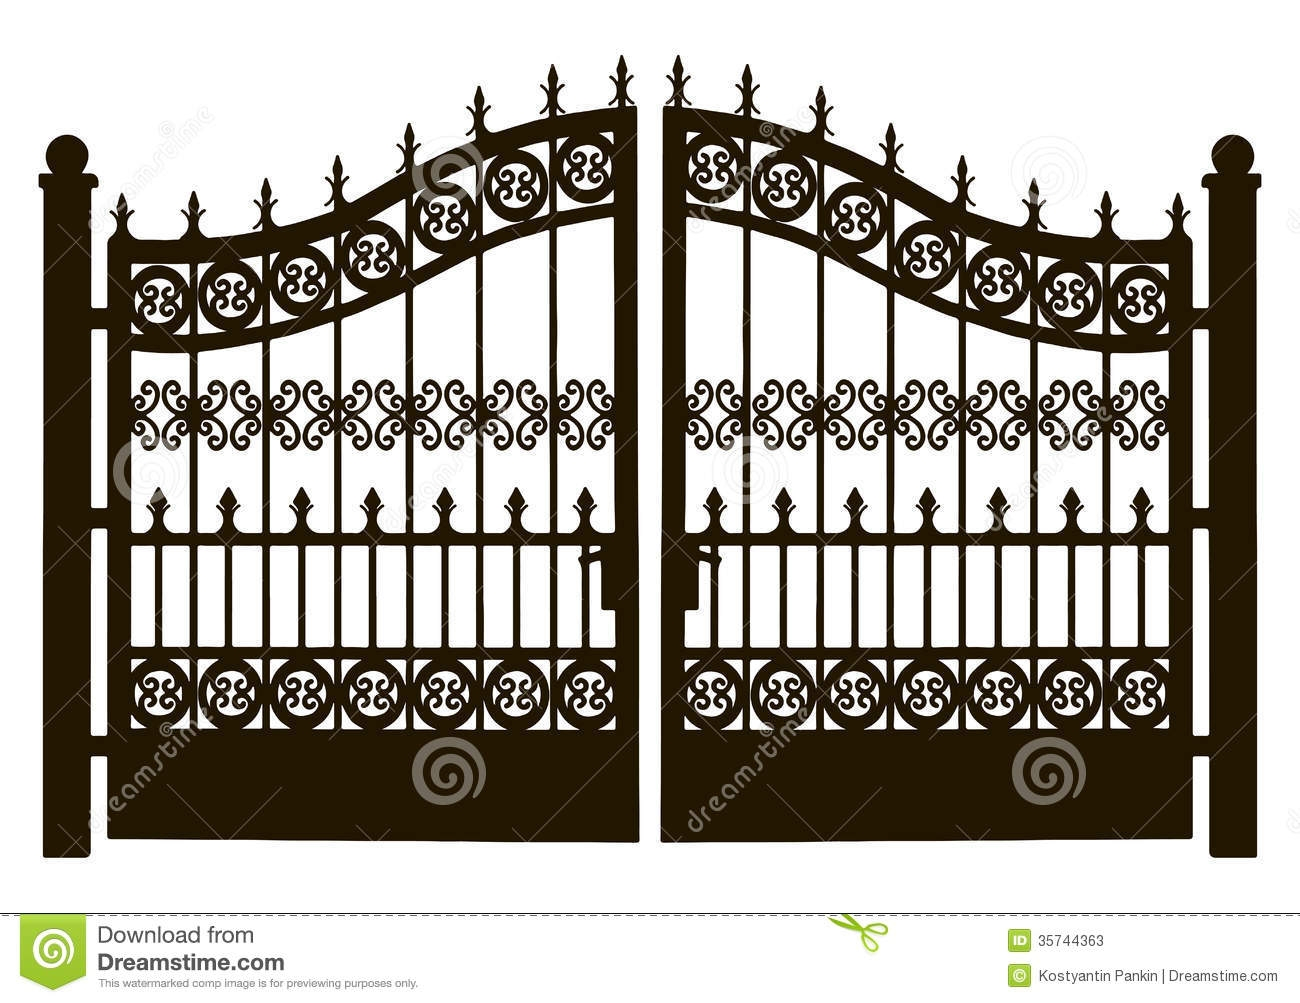 House with gate clipart.